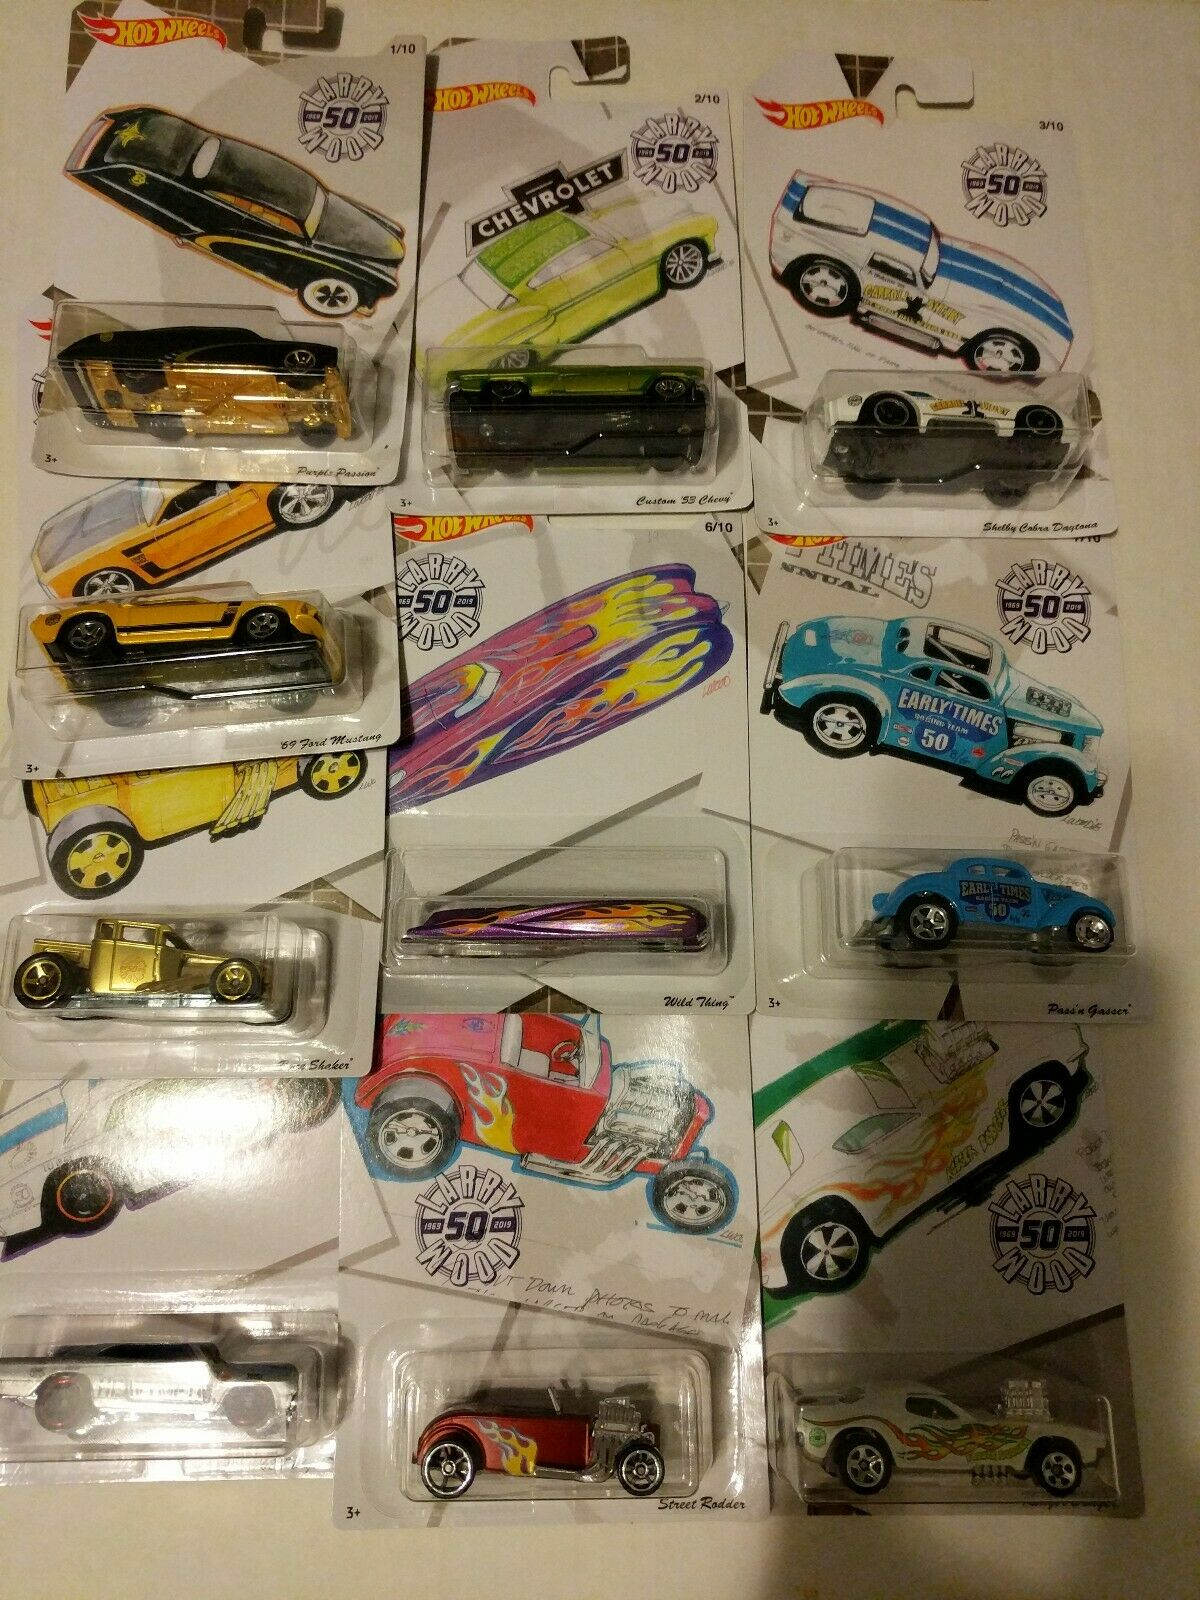 HOT WHEELS LARRY WOOD 50TH ANNIVERSARY COMPLETE SET brand new amazing condition